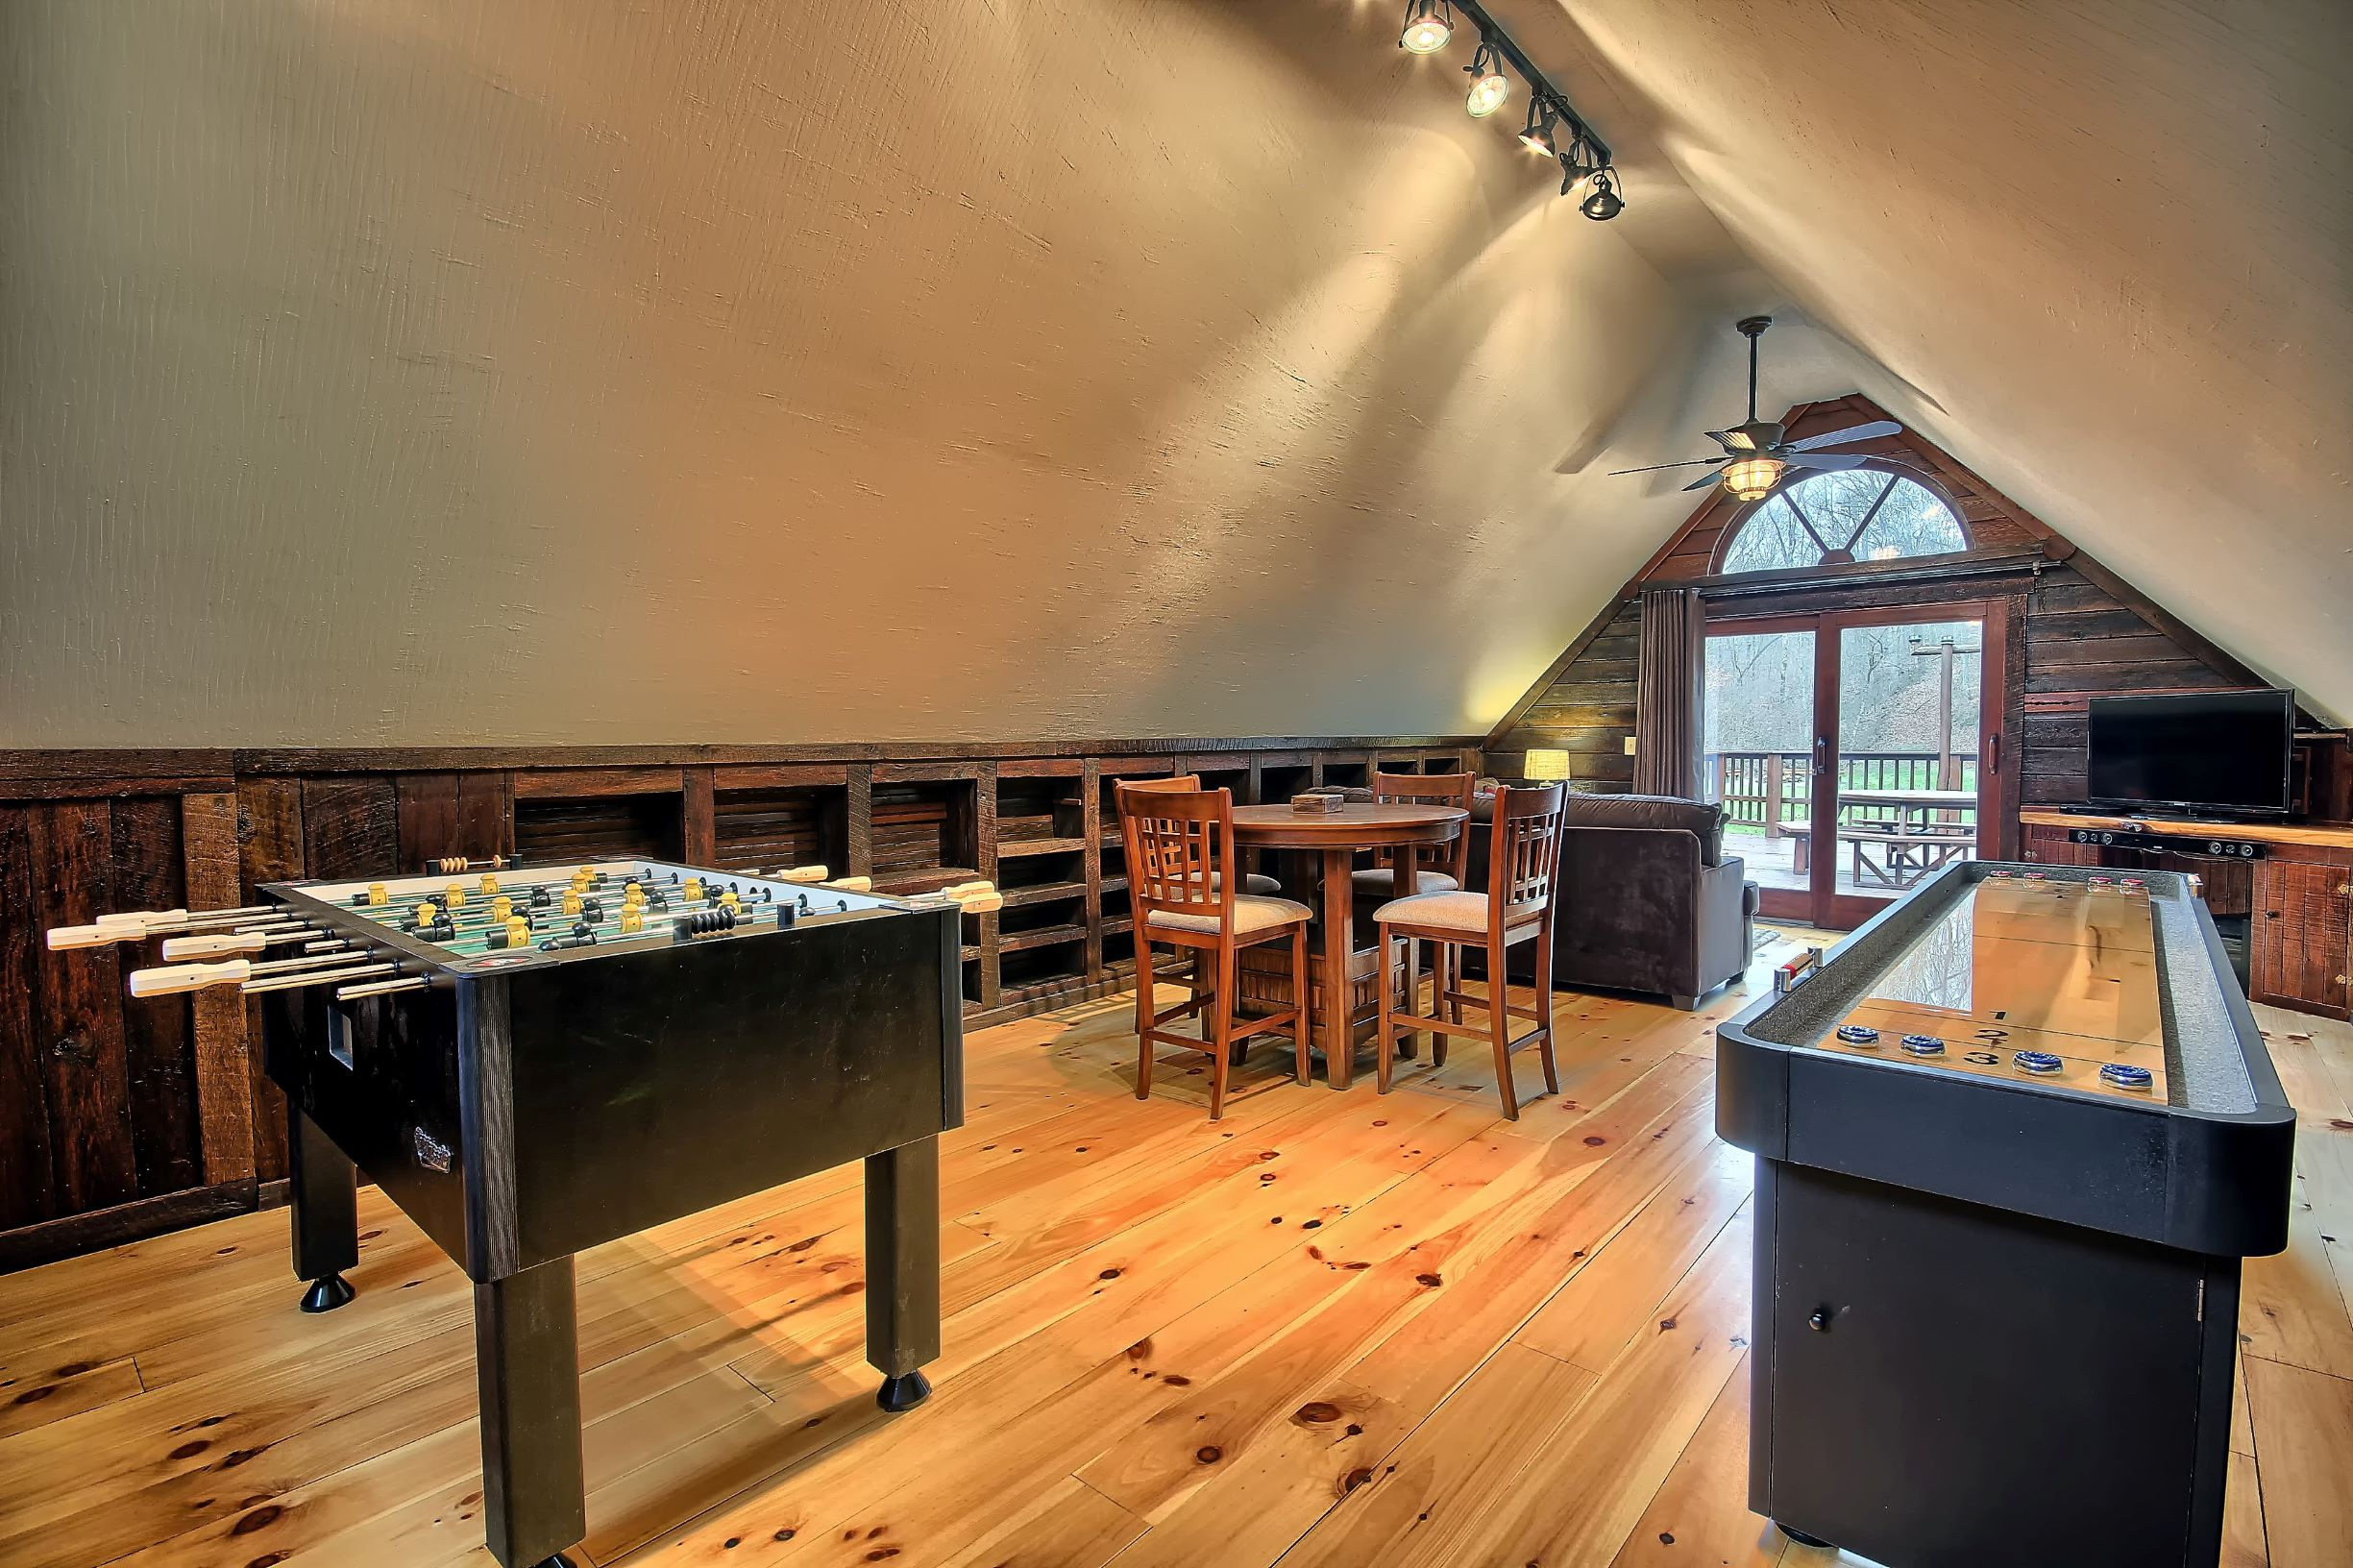 Upper Level Game Room - Features foosball, shuffle board, pub table, couch and tv with blue tooth soundbar.